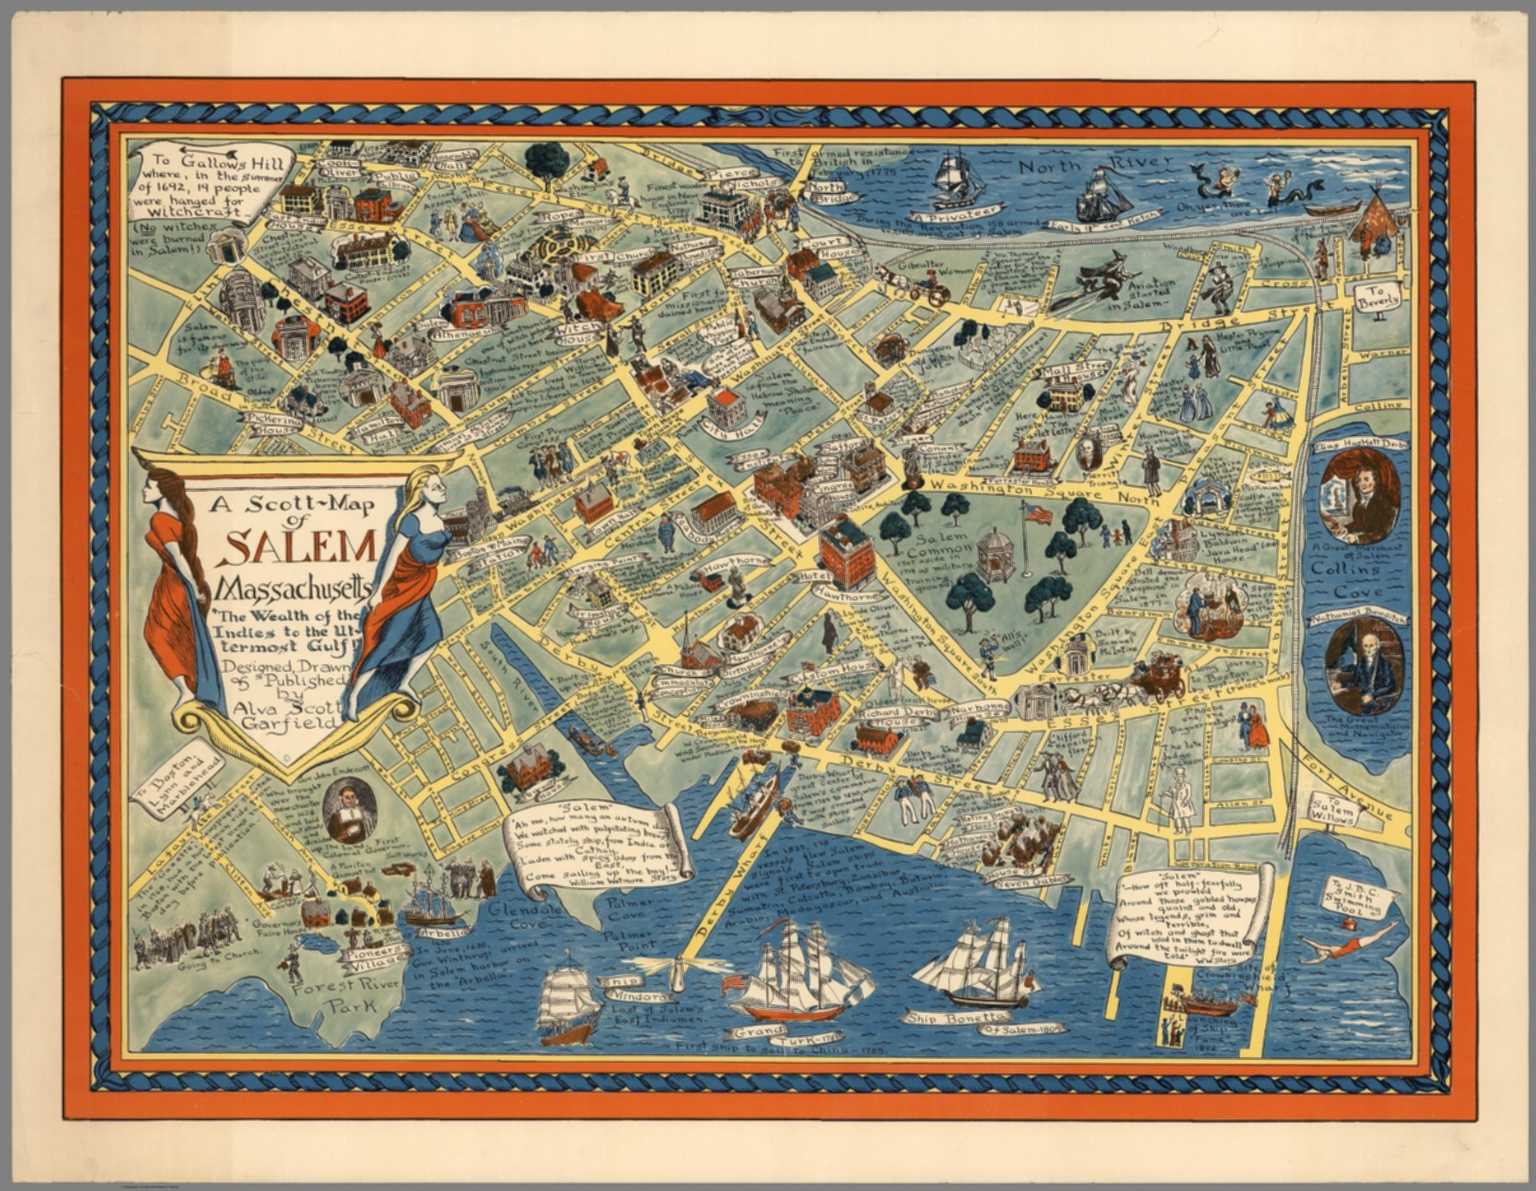 Map Of Salem Ma A Scott Map of Salem Massachusetts.   David Rumsey Historical Map